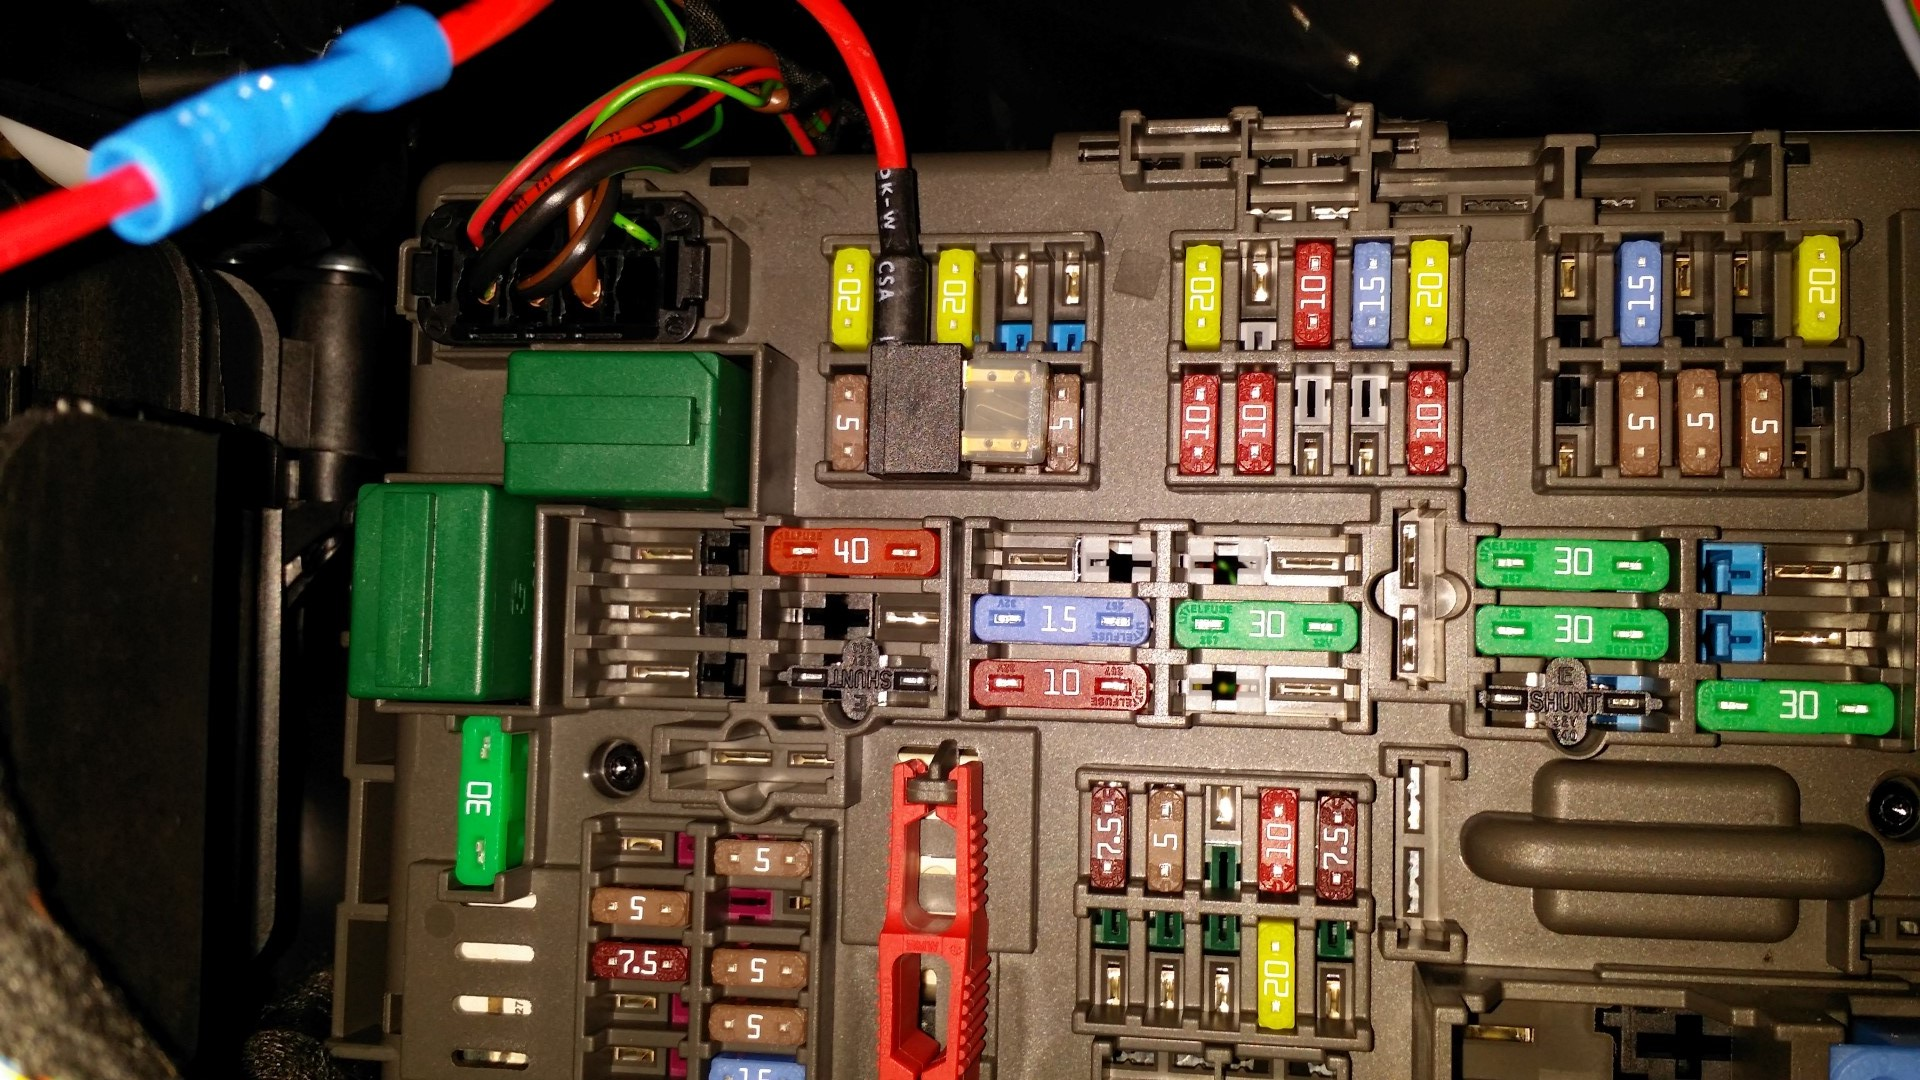 Bmw 5 Series E60 Fuse Box Location